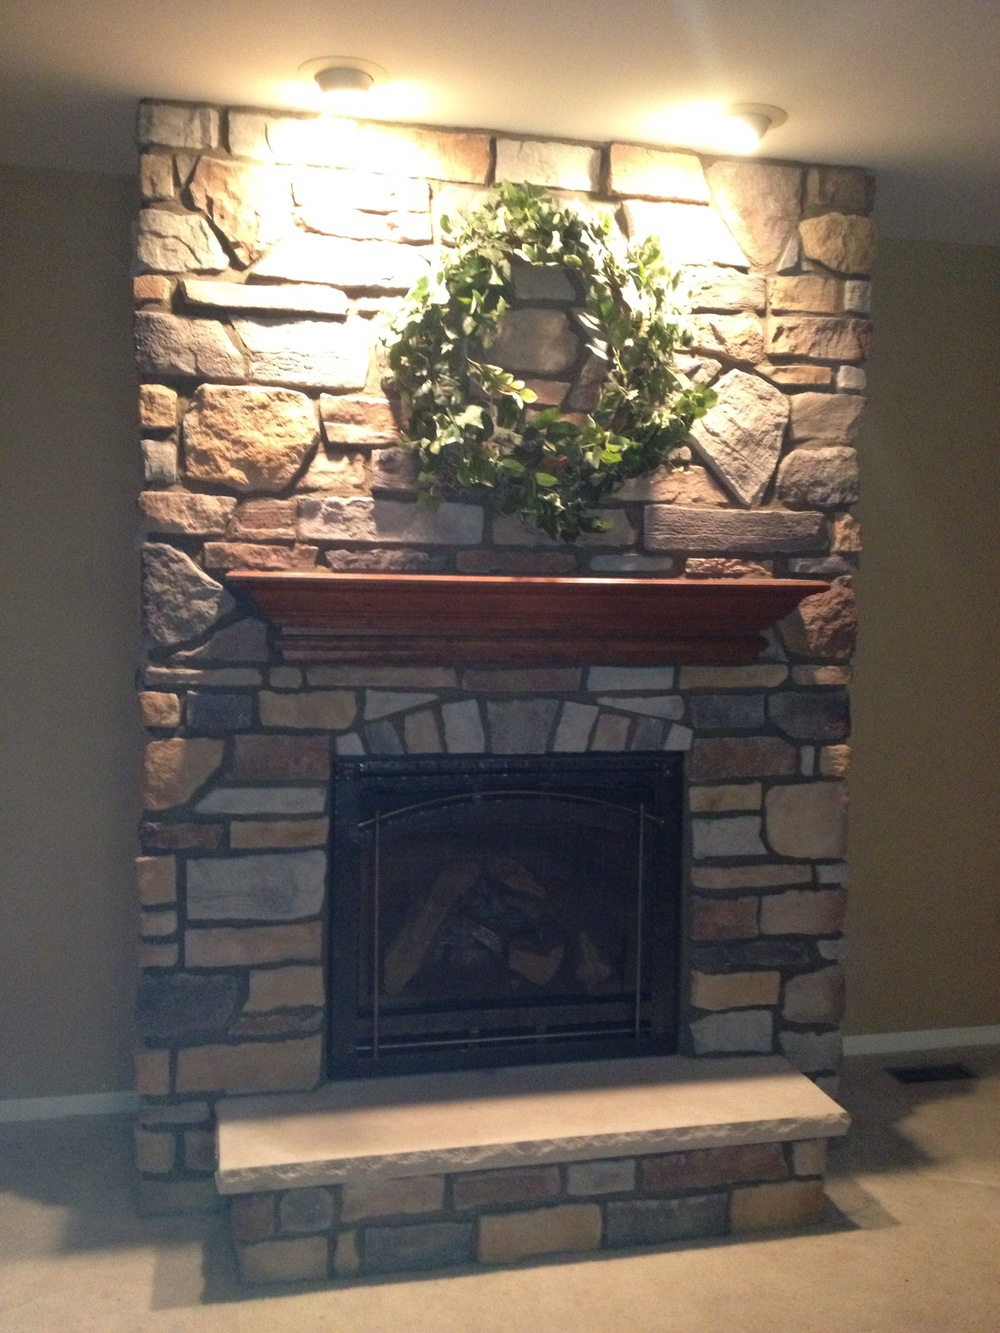 6000CLX w/ Stone Work and Mantel